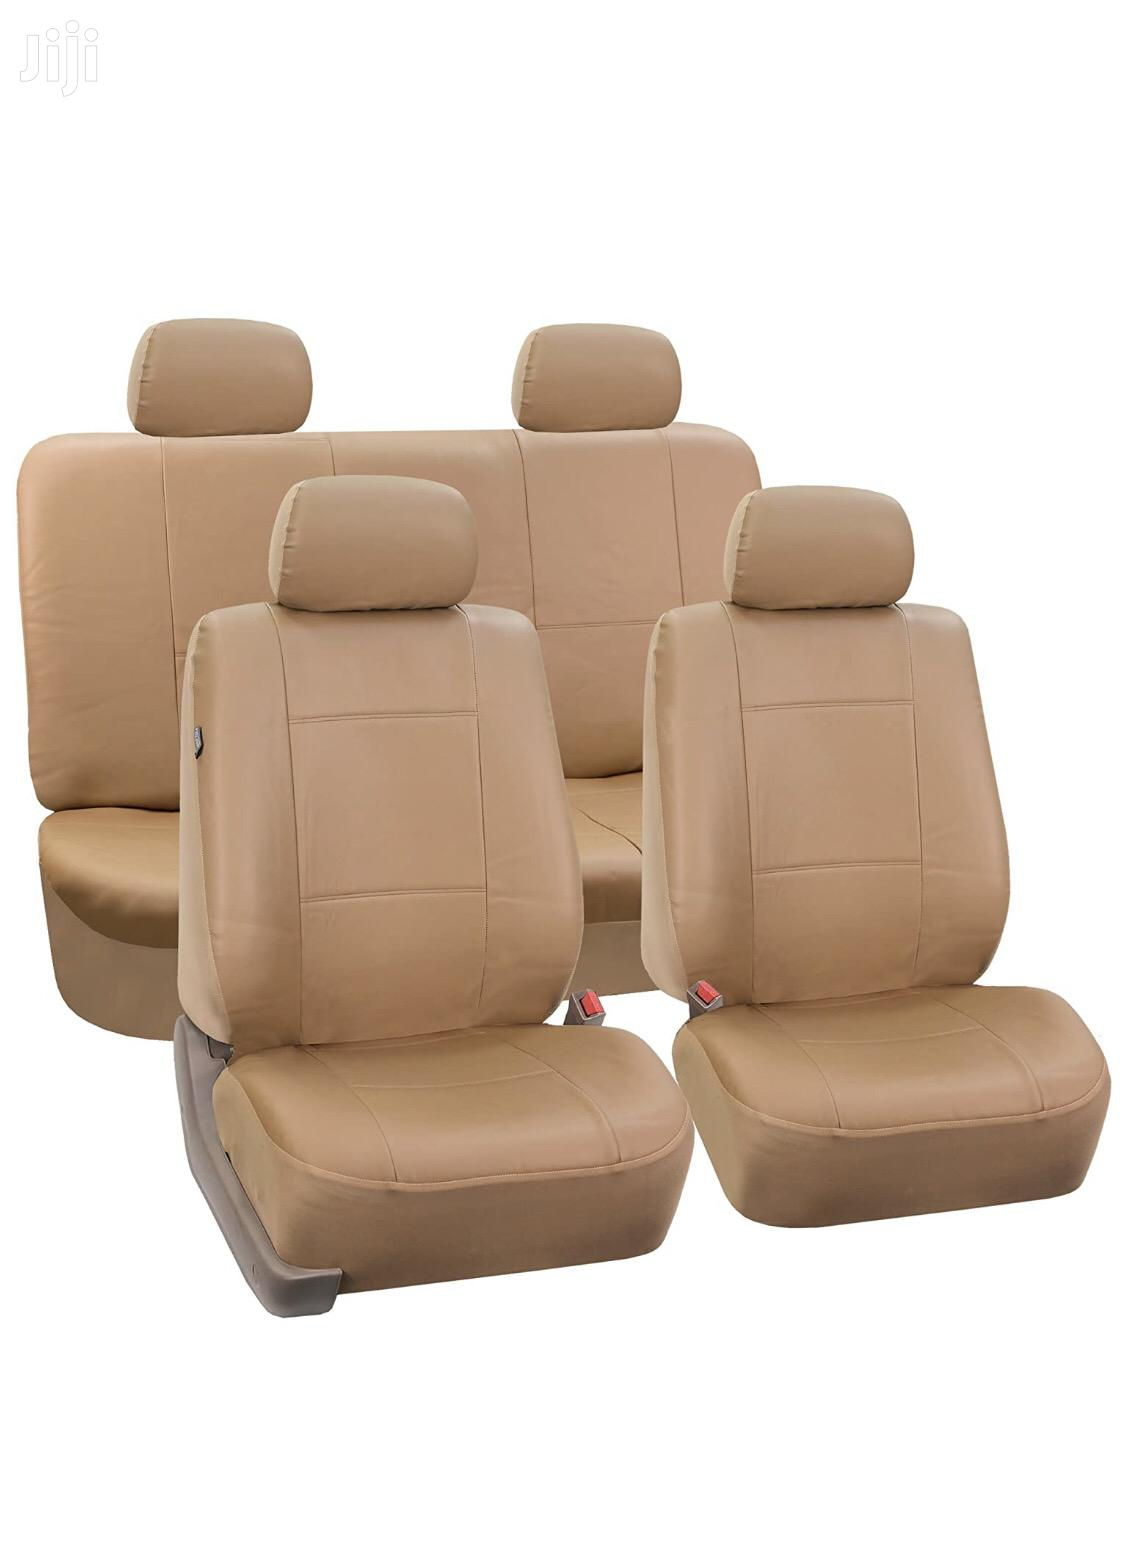 Wellfit Car Leather Cream Seat Covers